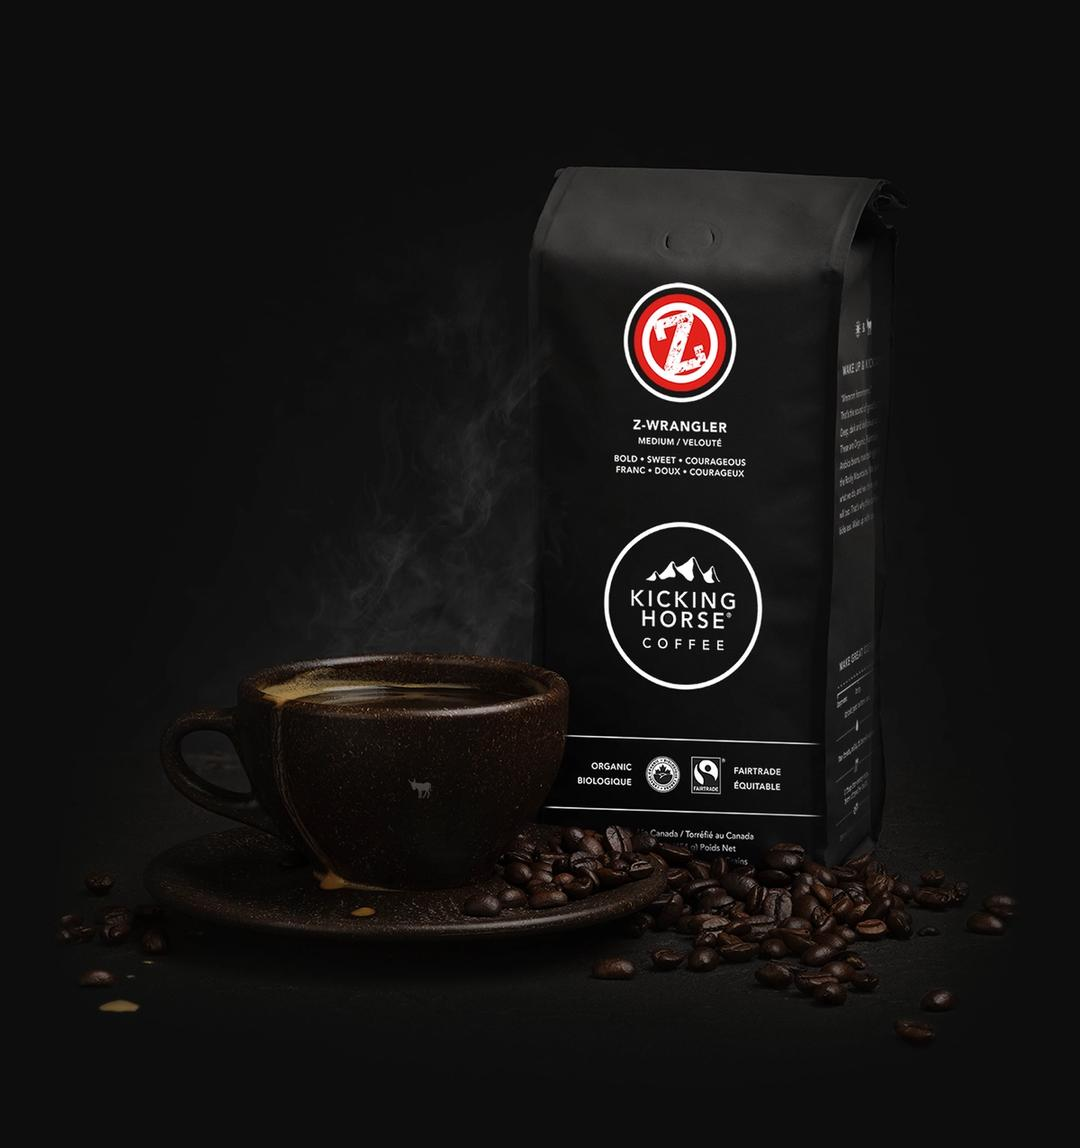 Z-Wrangler Whole Bean coffee bag with cup of coffee and coffee beans